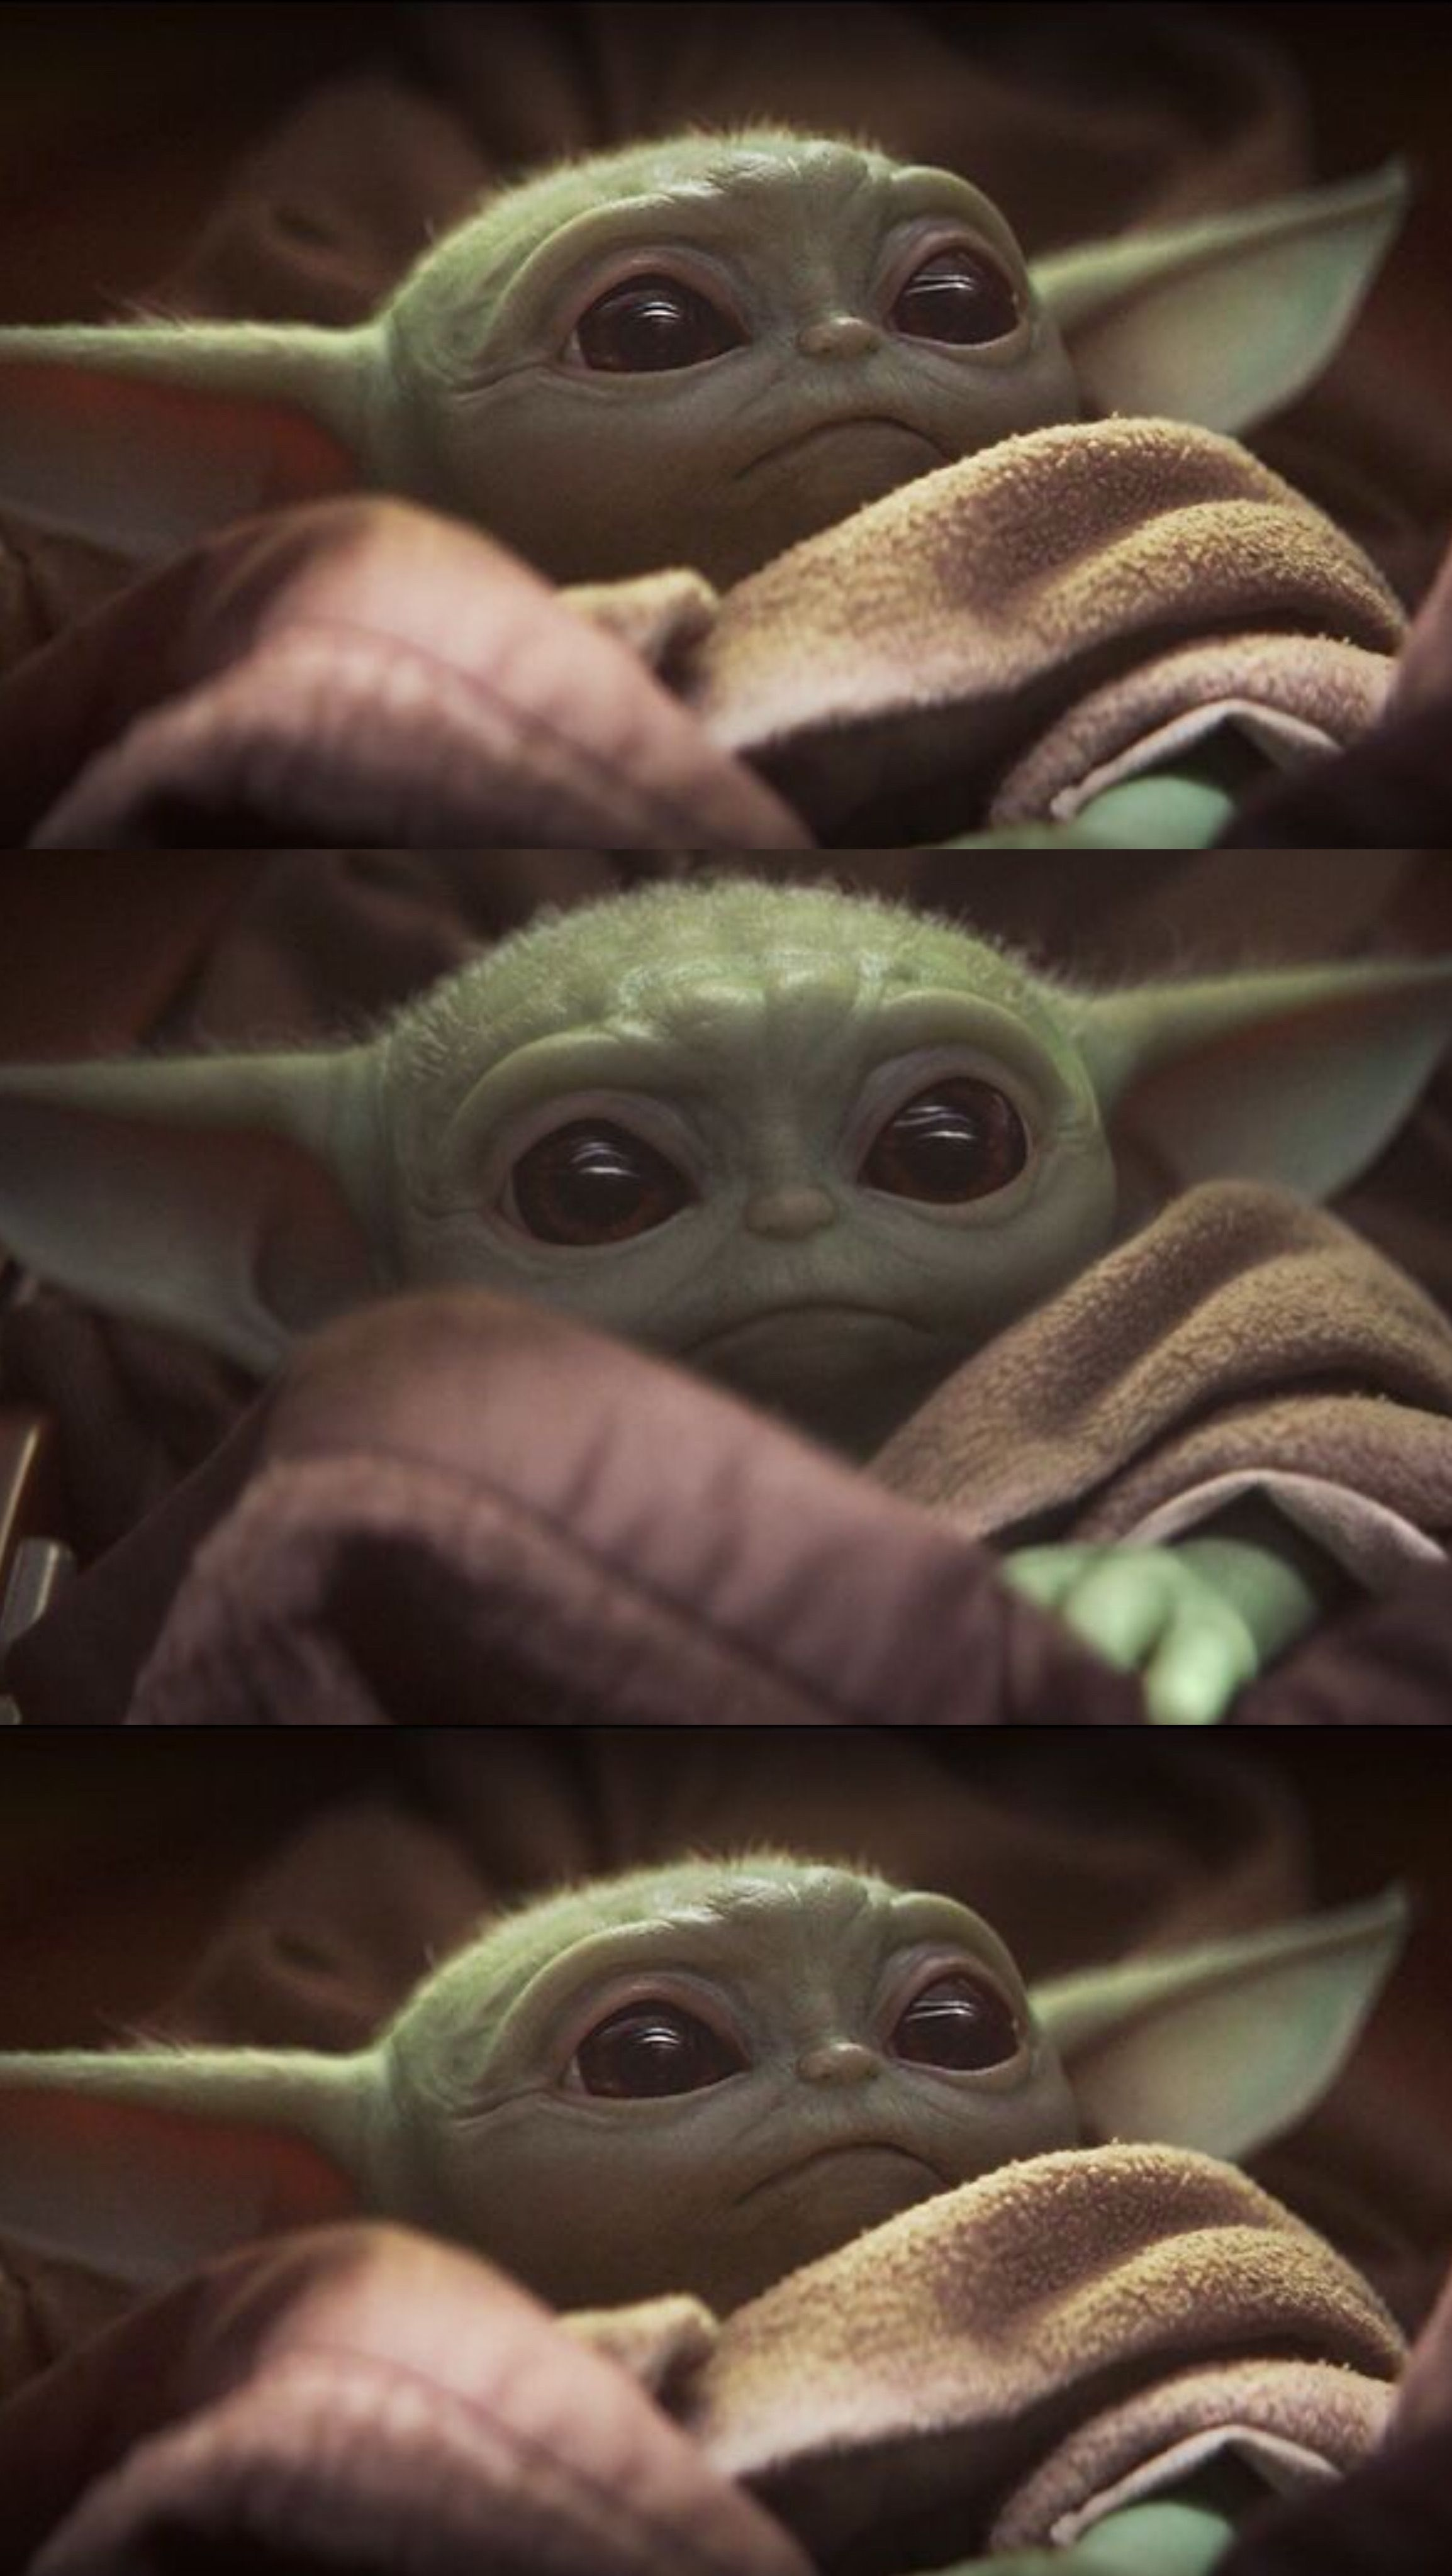 Cute baby yoda mandalorian iPhone wallpaper 4k